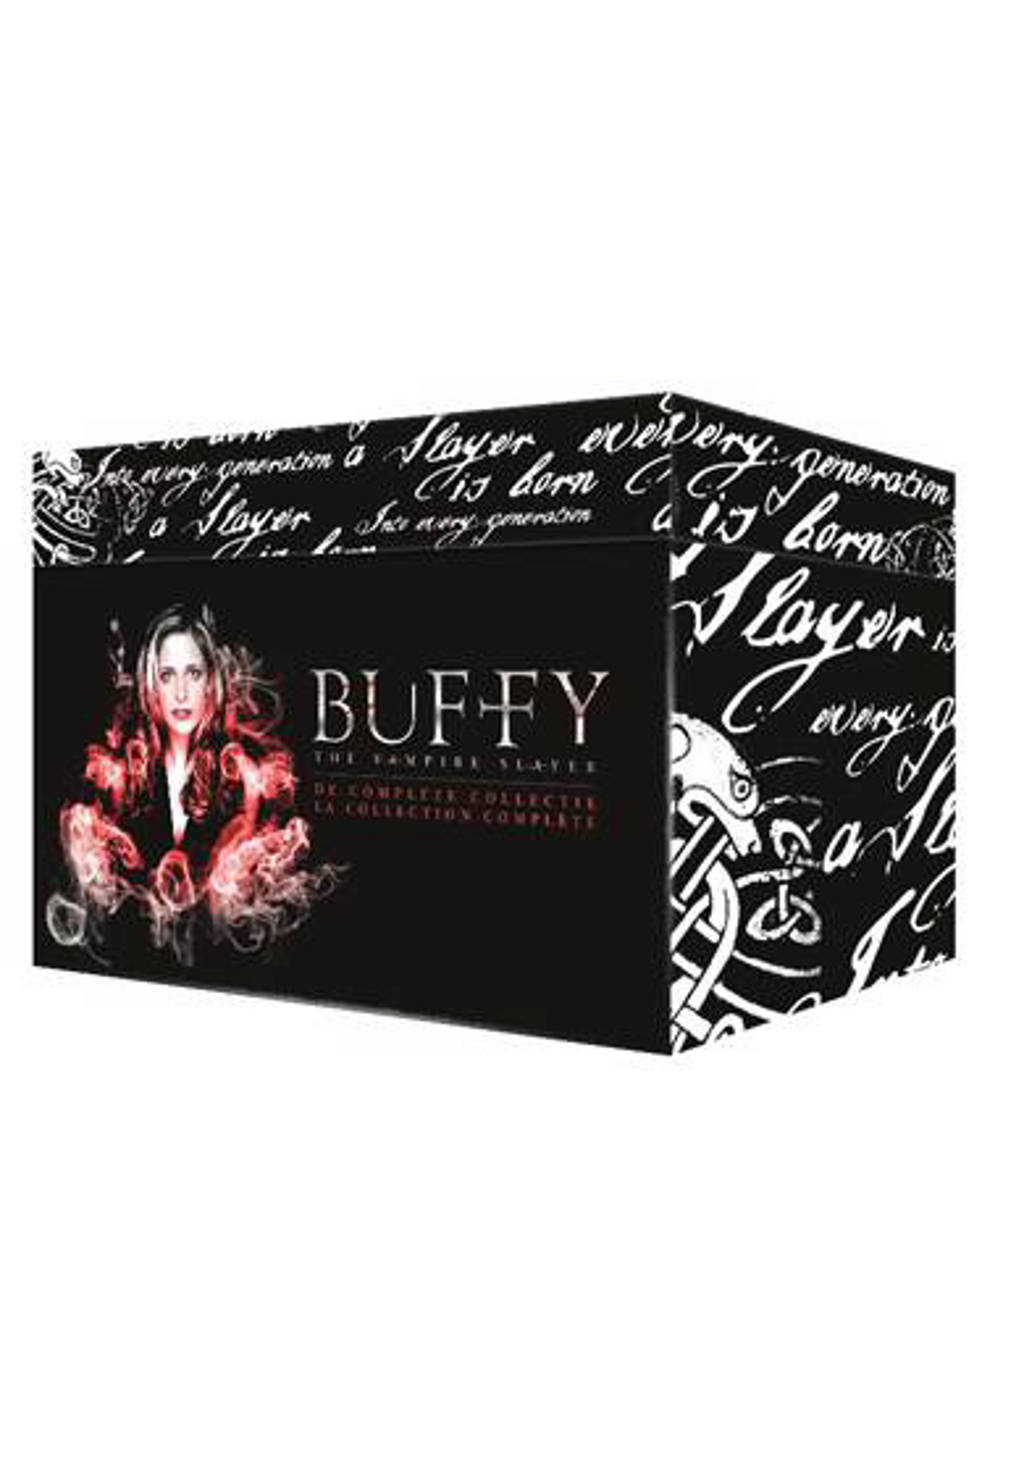 Buffy the vampire slayer - Complete collection (DVD)